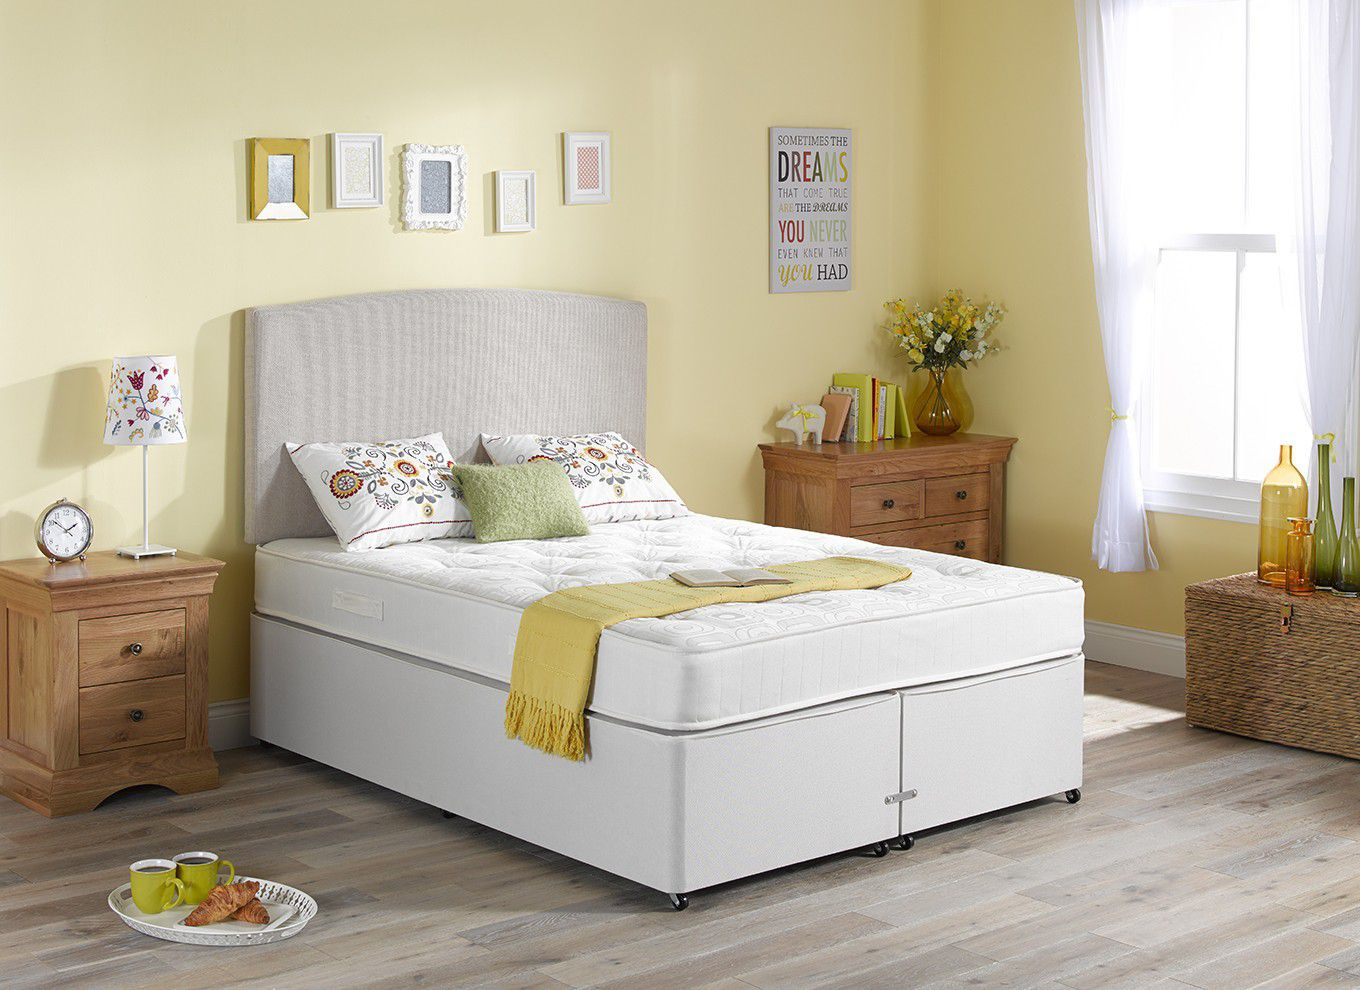 Compare prices of divan beds read divan bed reviews buy for Double divan bed with firm mattress